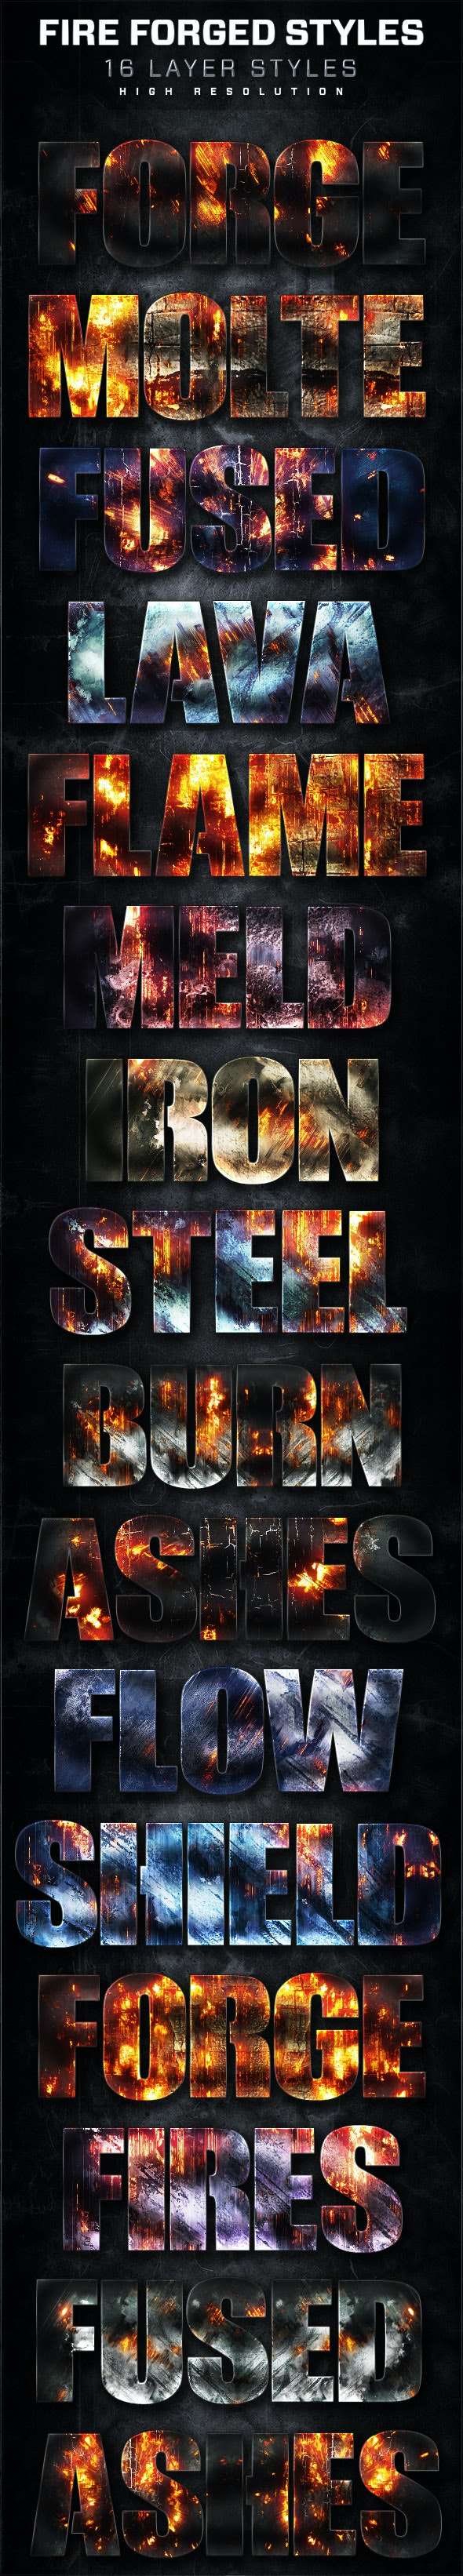 16 Fire Forged Layer Styles Volume 6 - Text Effects Styles